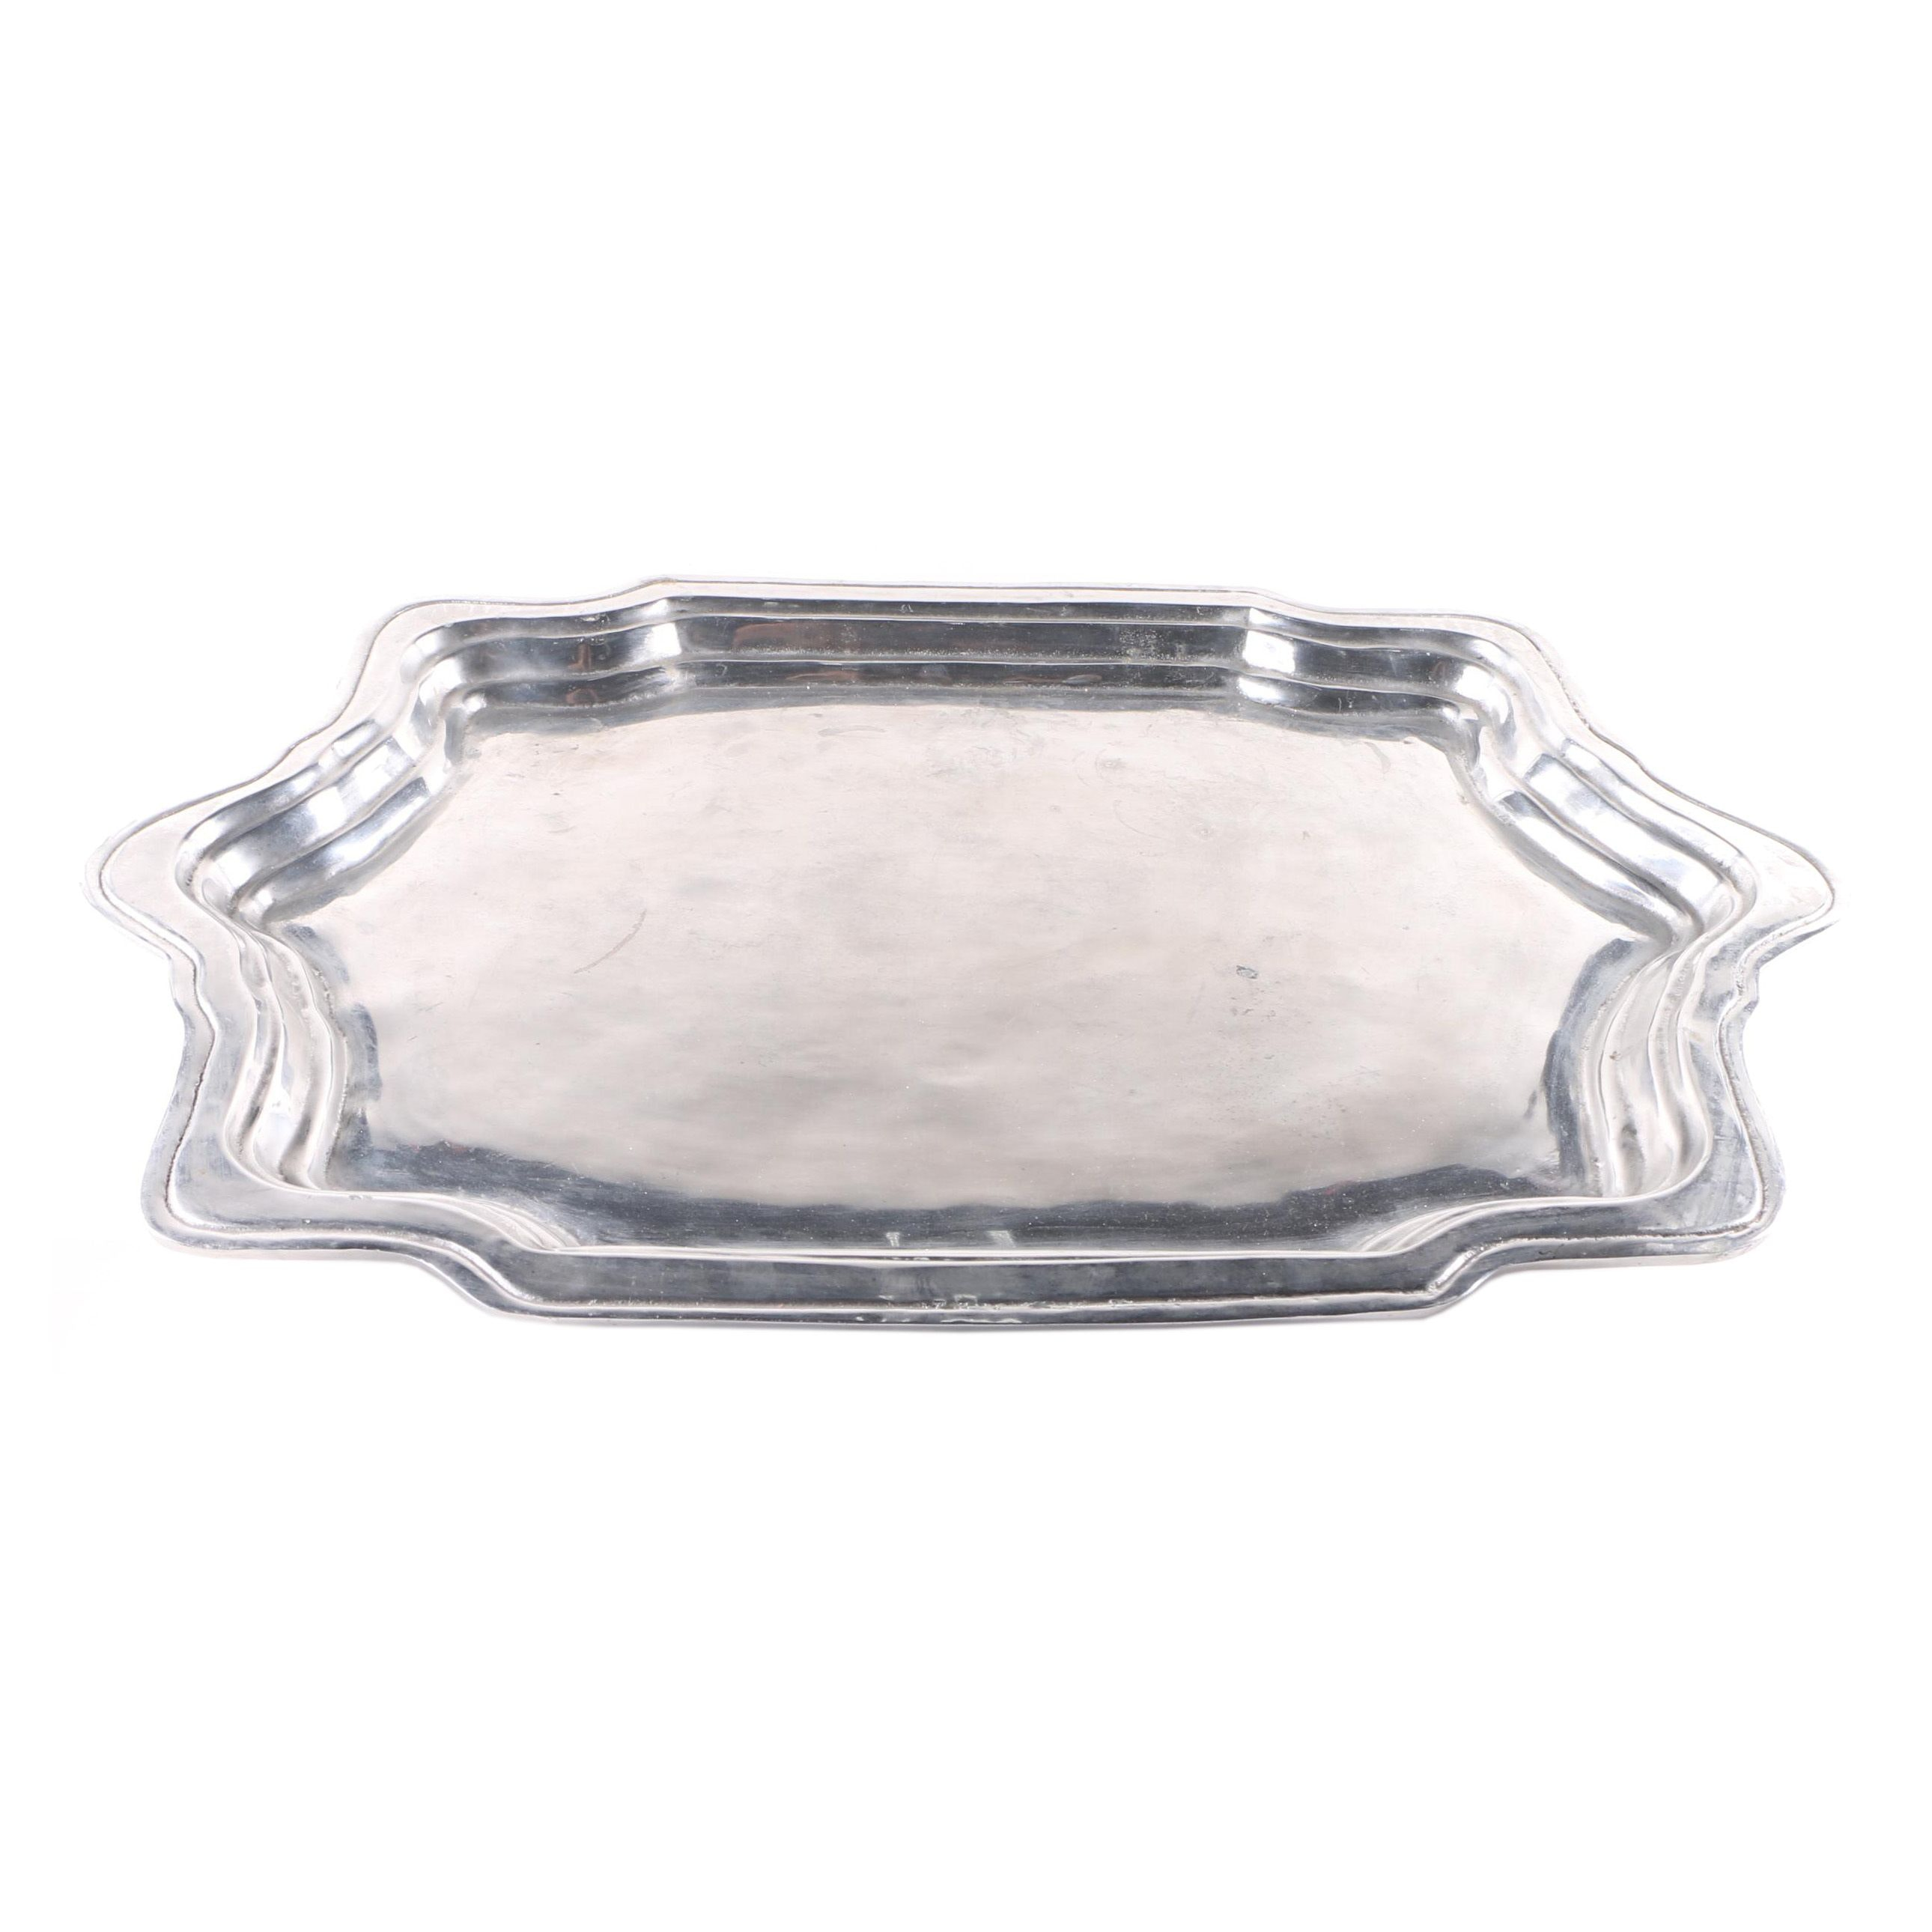 Silver Tone Metal Serving Tray